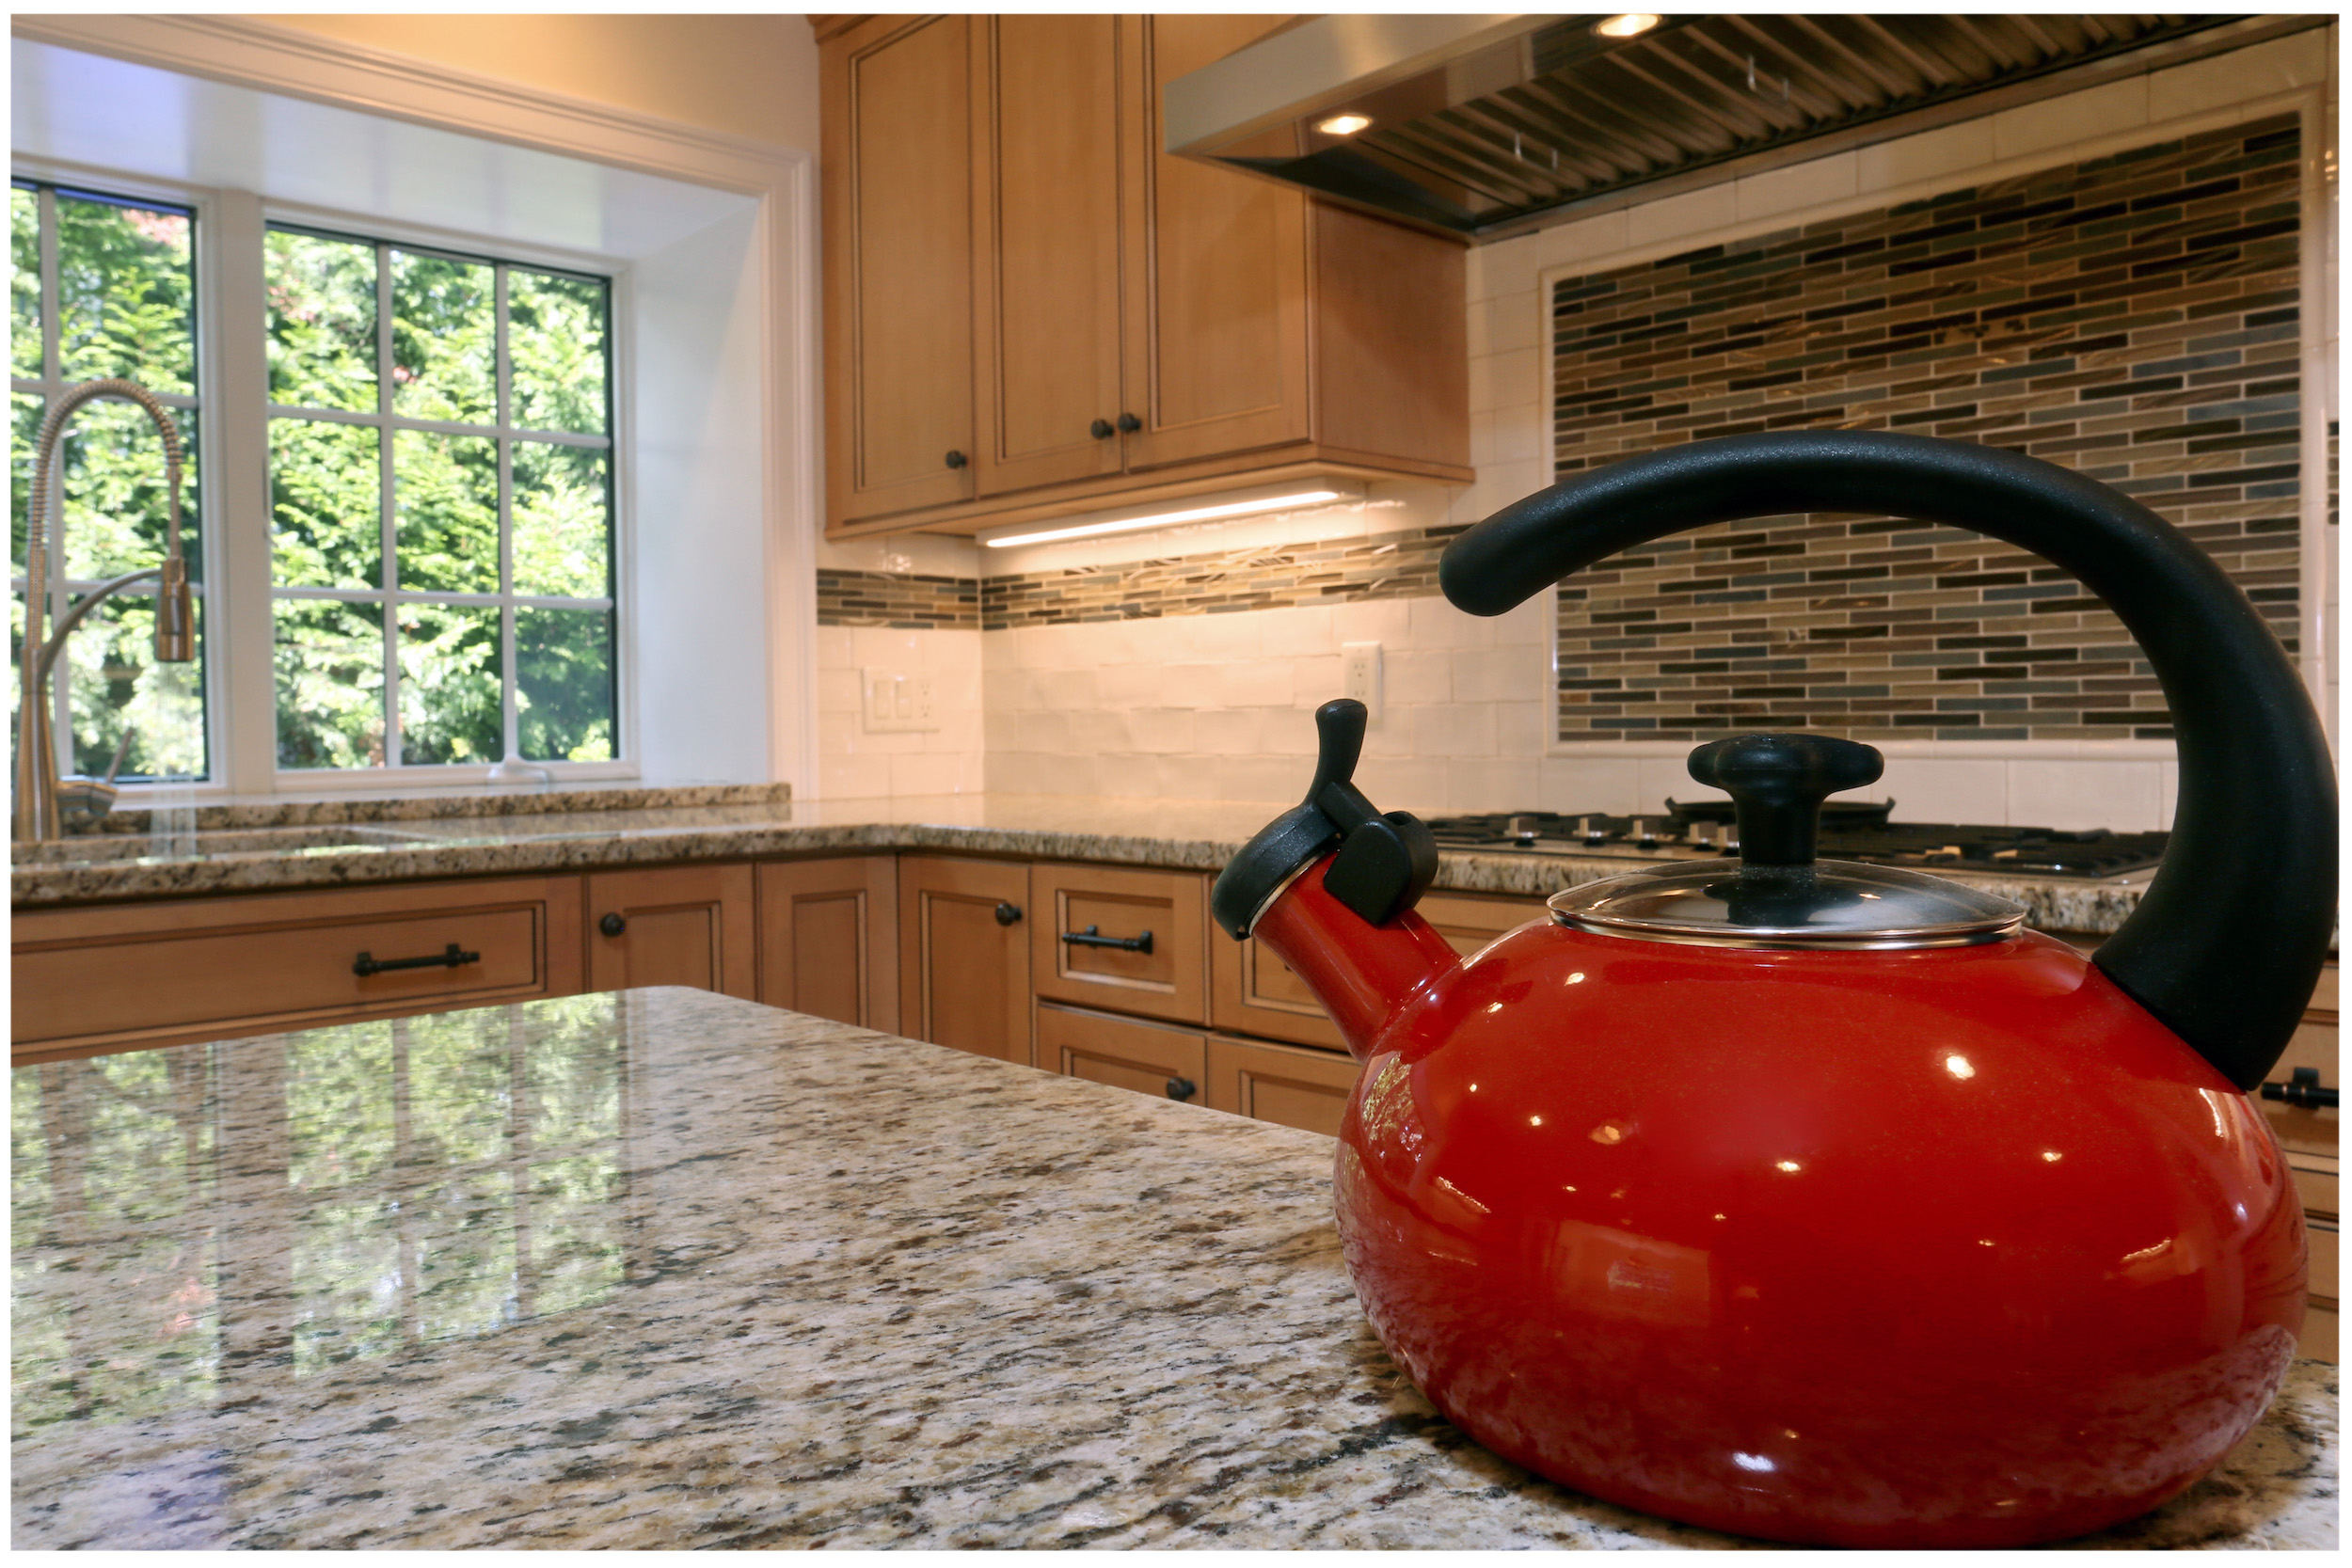 KitchenVisions-New-Traditional-Kitchen-ChestnutHill-6E9C8465rt-12x8-300.jpg